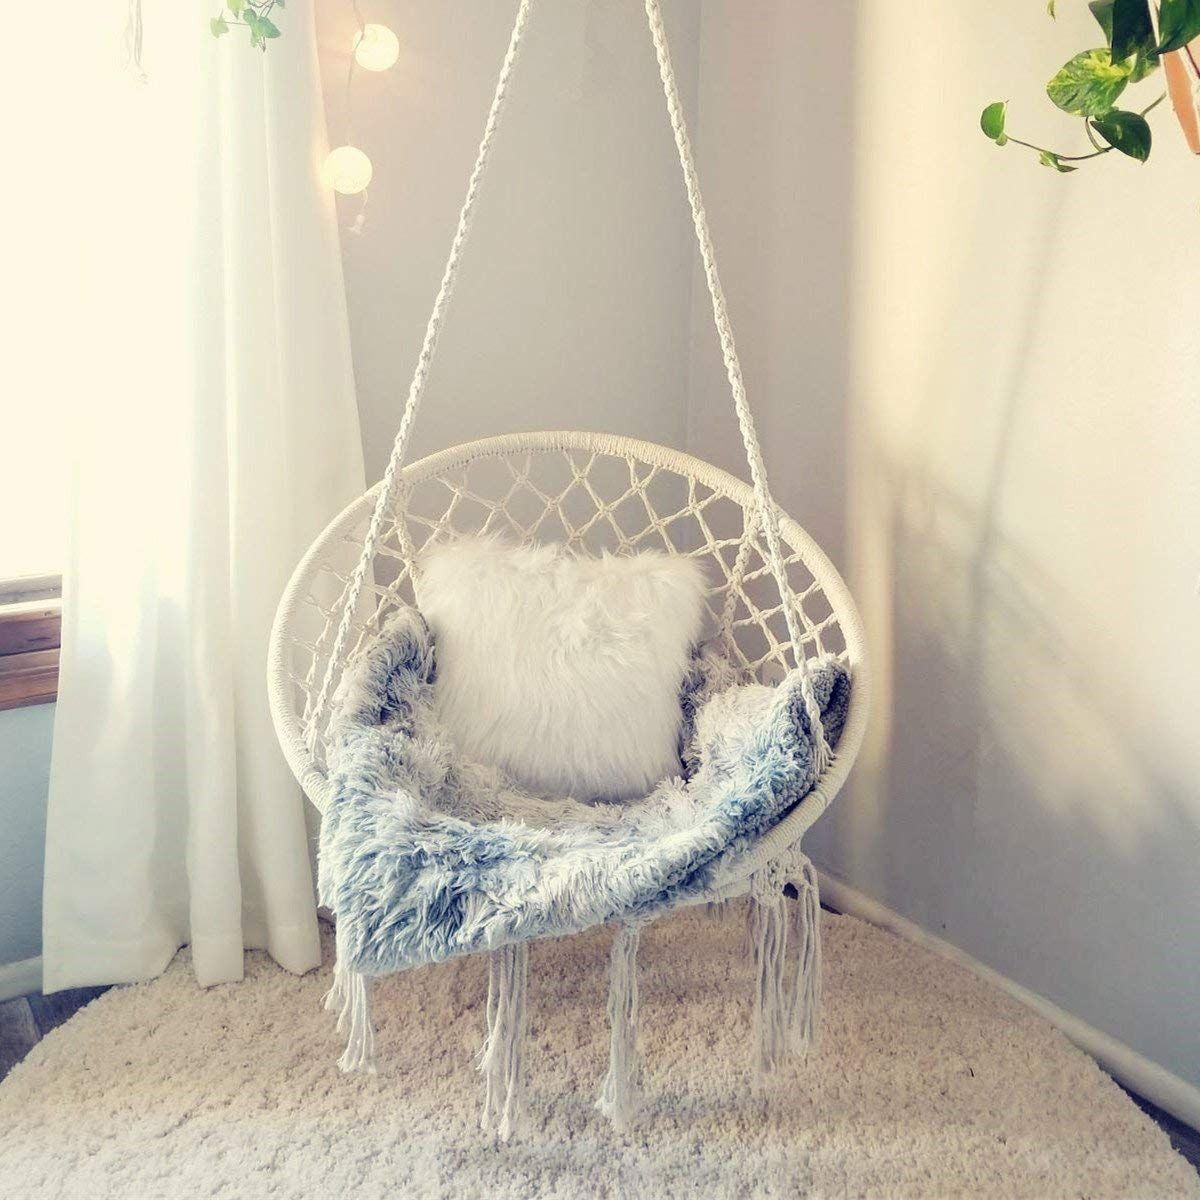 Check Out This Hammock Swing This Hammock Chair Is The Perfect Size For A Bedroom Living Room Patio Porch In 2020 Bedroom Swing Swing Chair Bedroom Cozy Room Decor